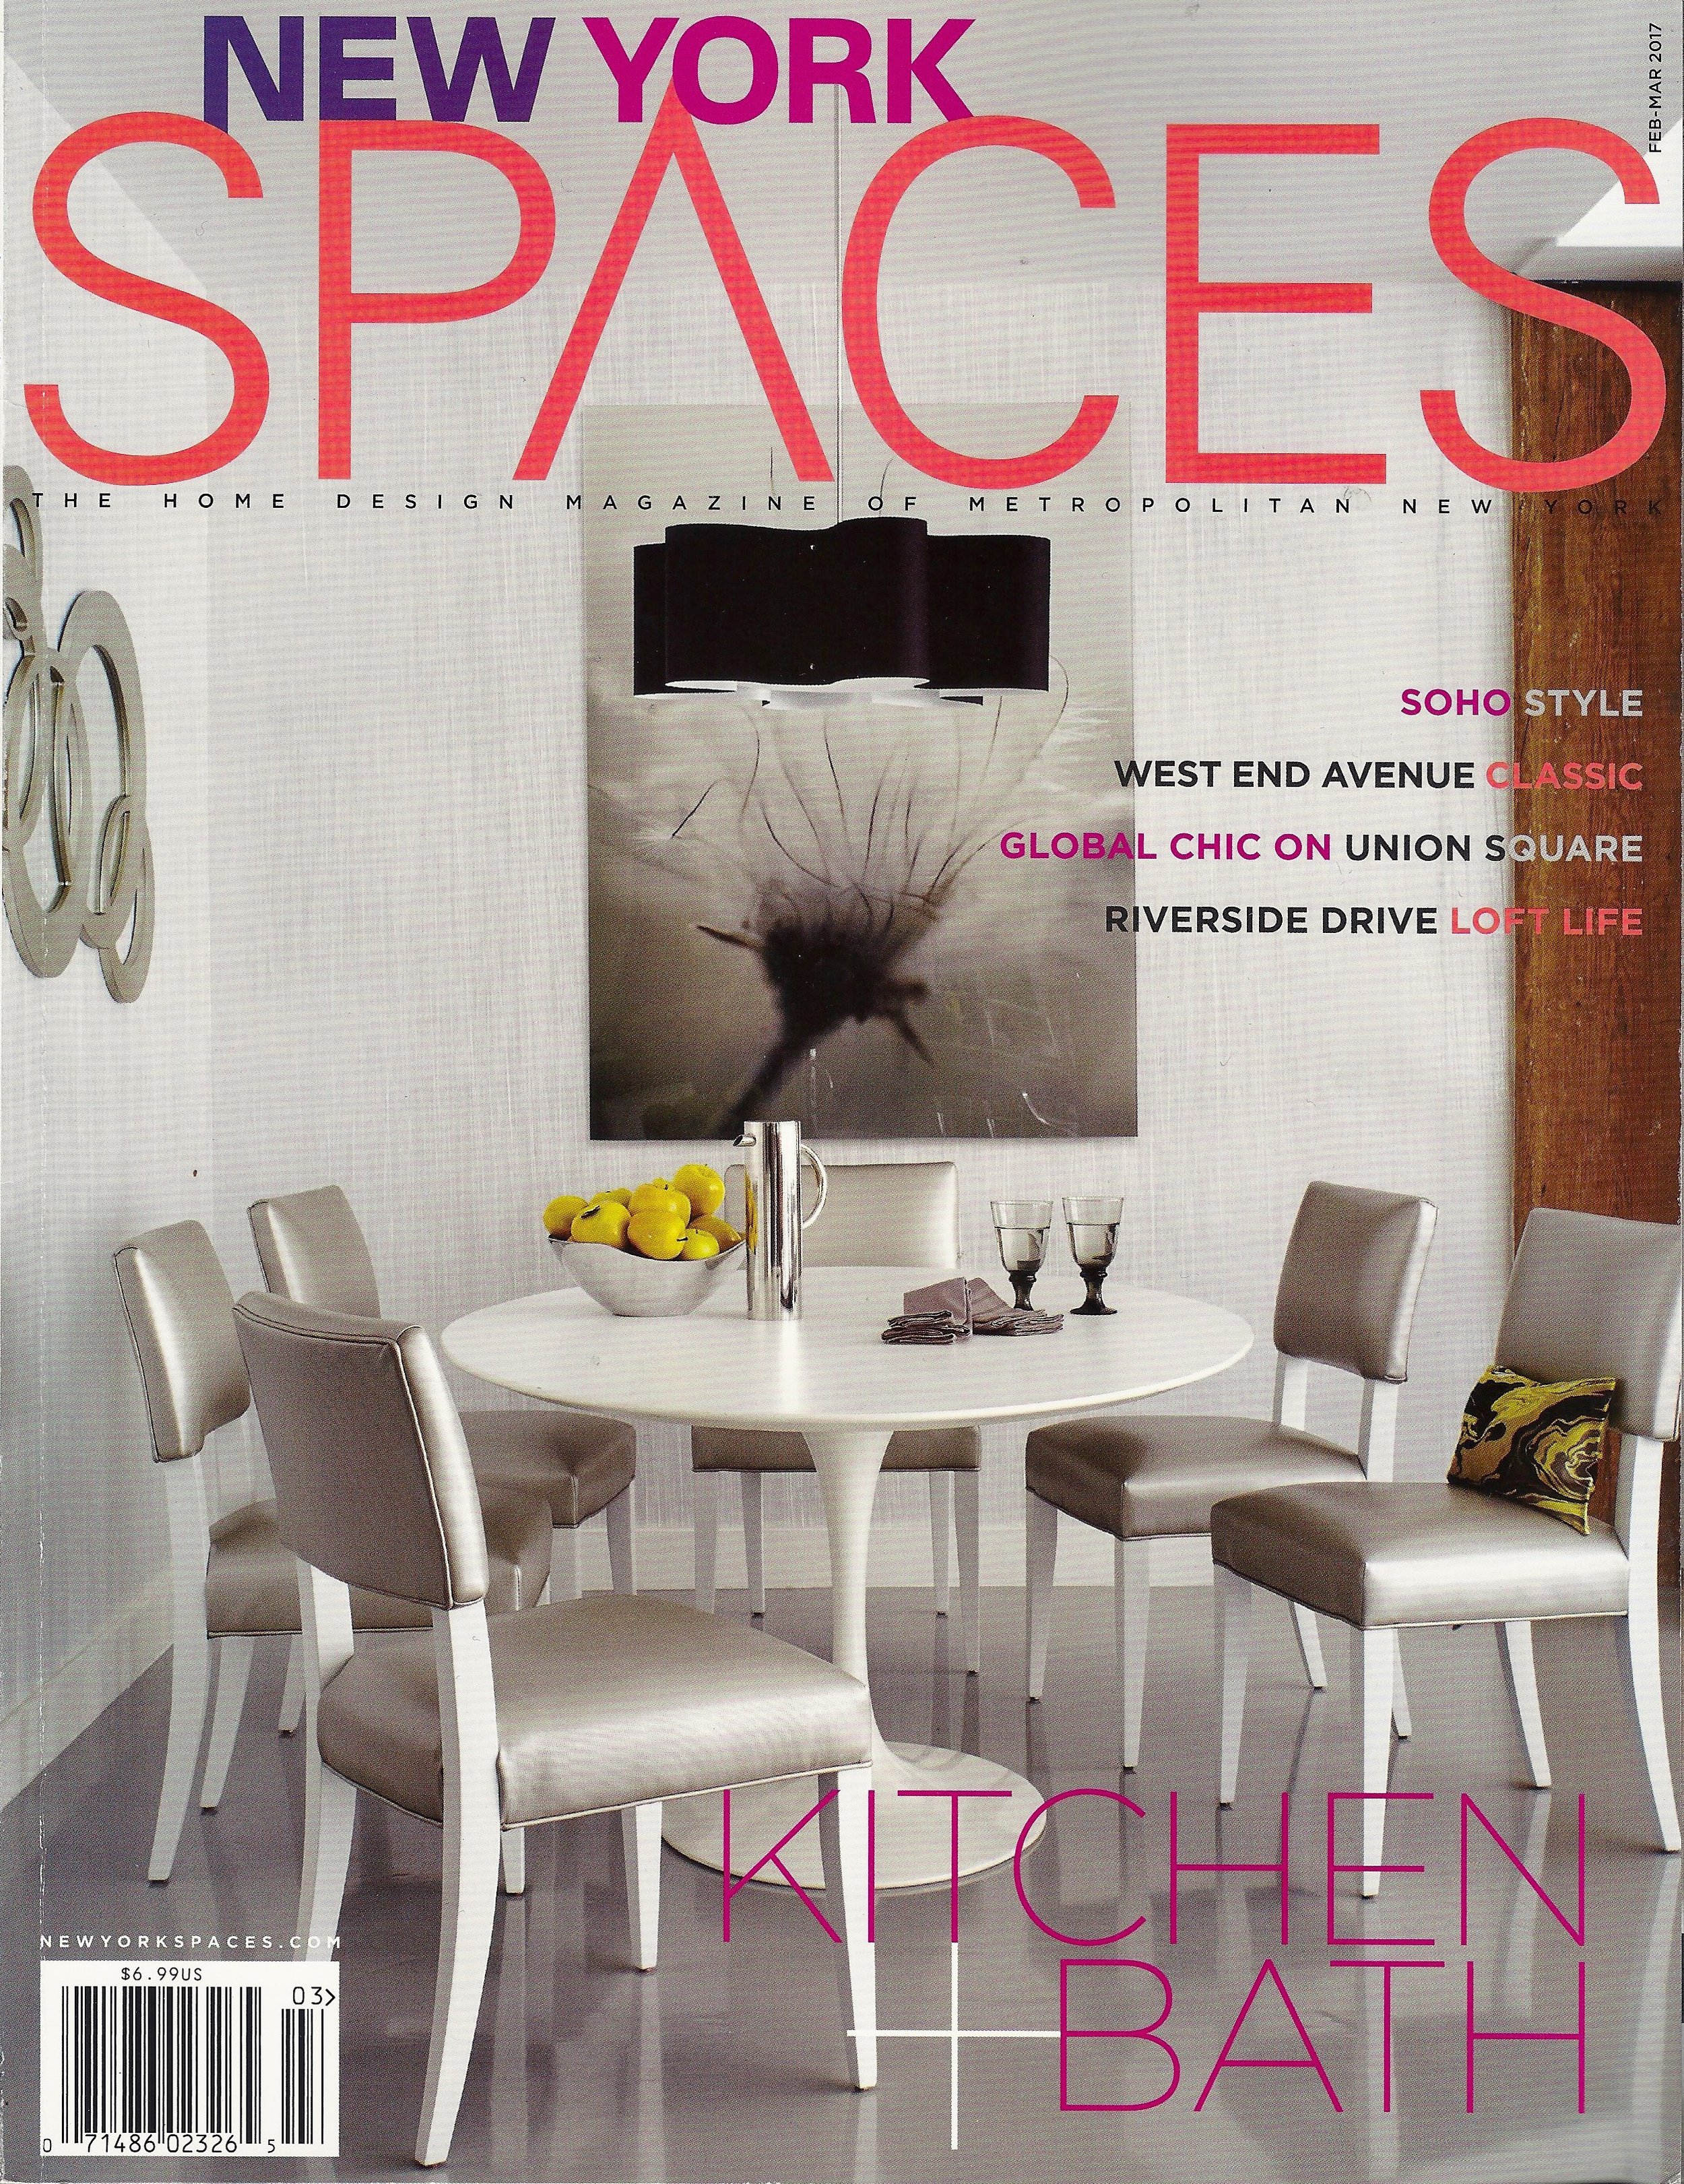 New York spaces cover feb-march 2017.jpg